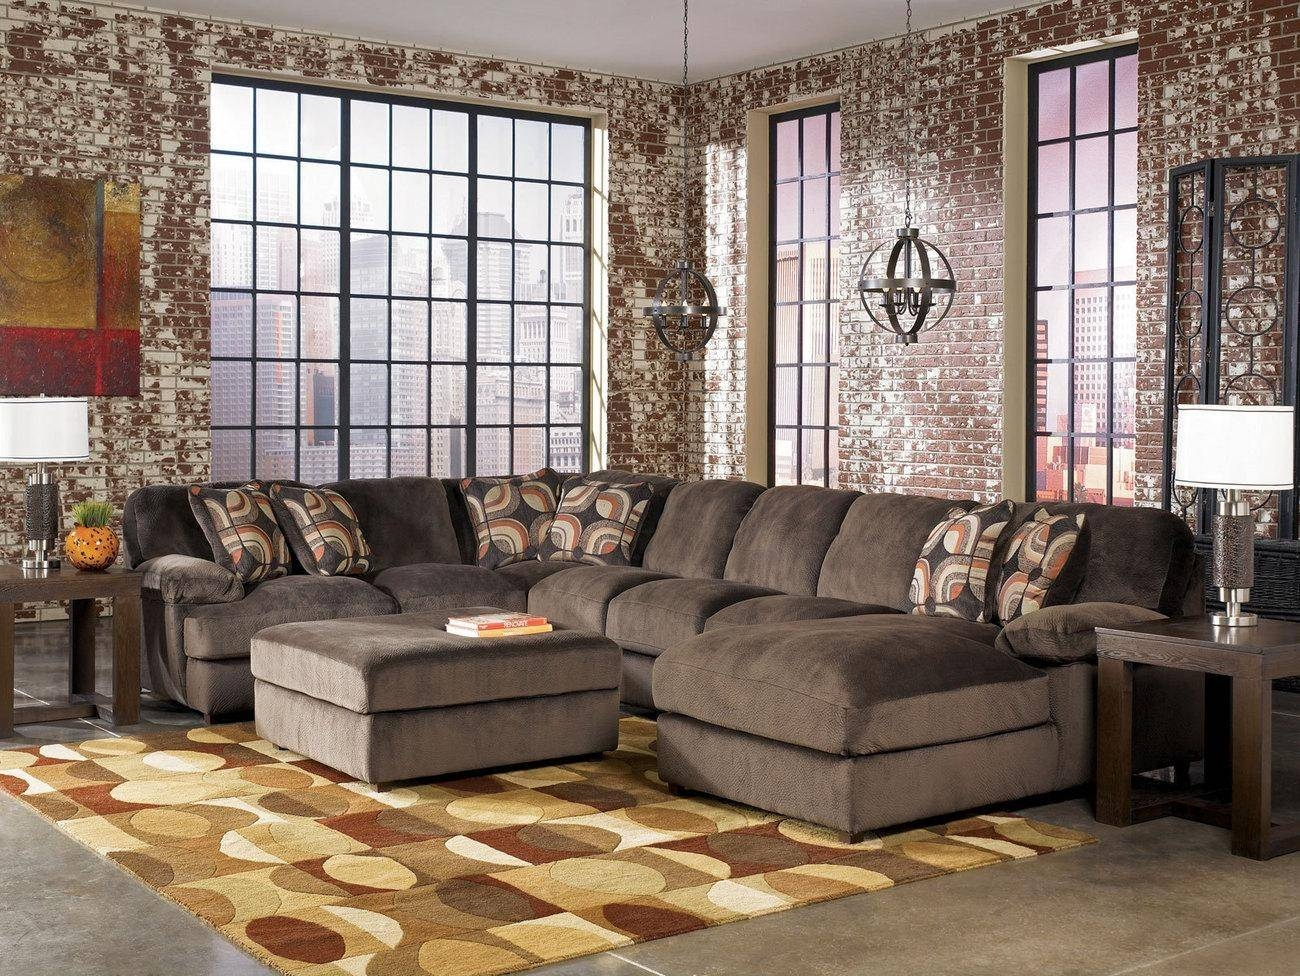 20 Inspirations Sealy Sofas | Sofa Ideas with Sealy Sofas (Image 9 of 15)